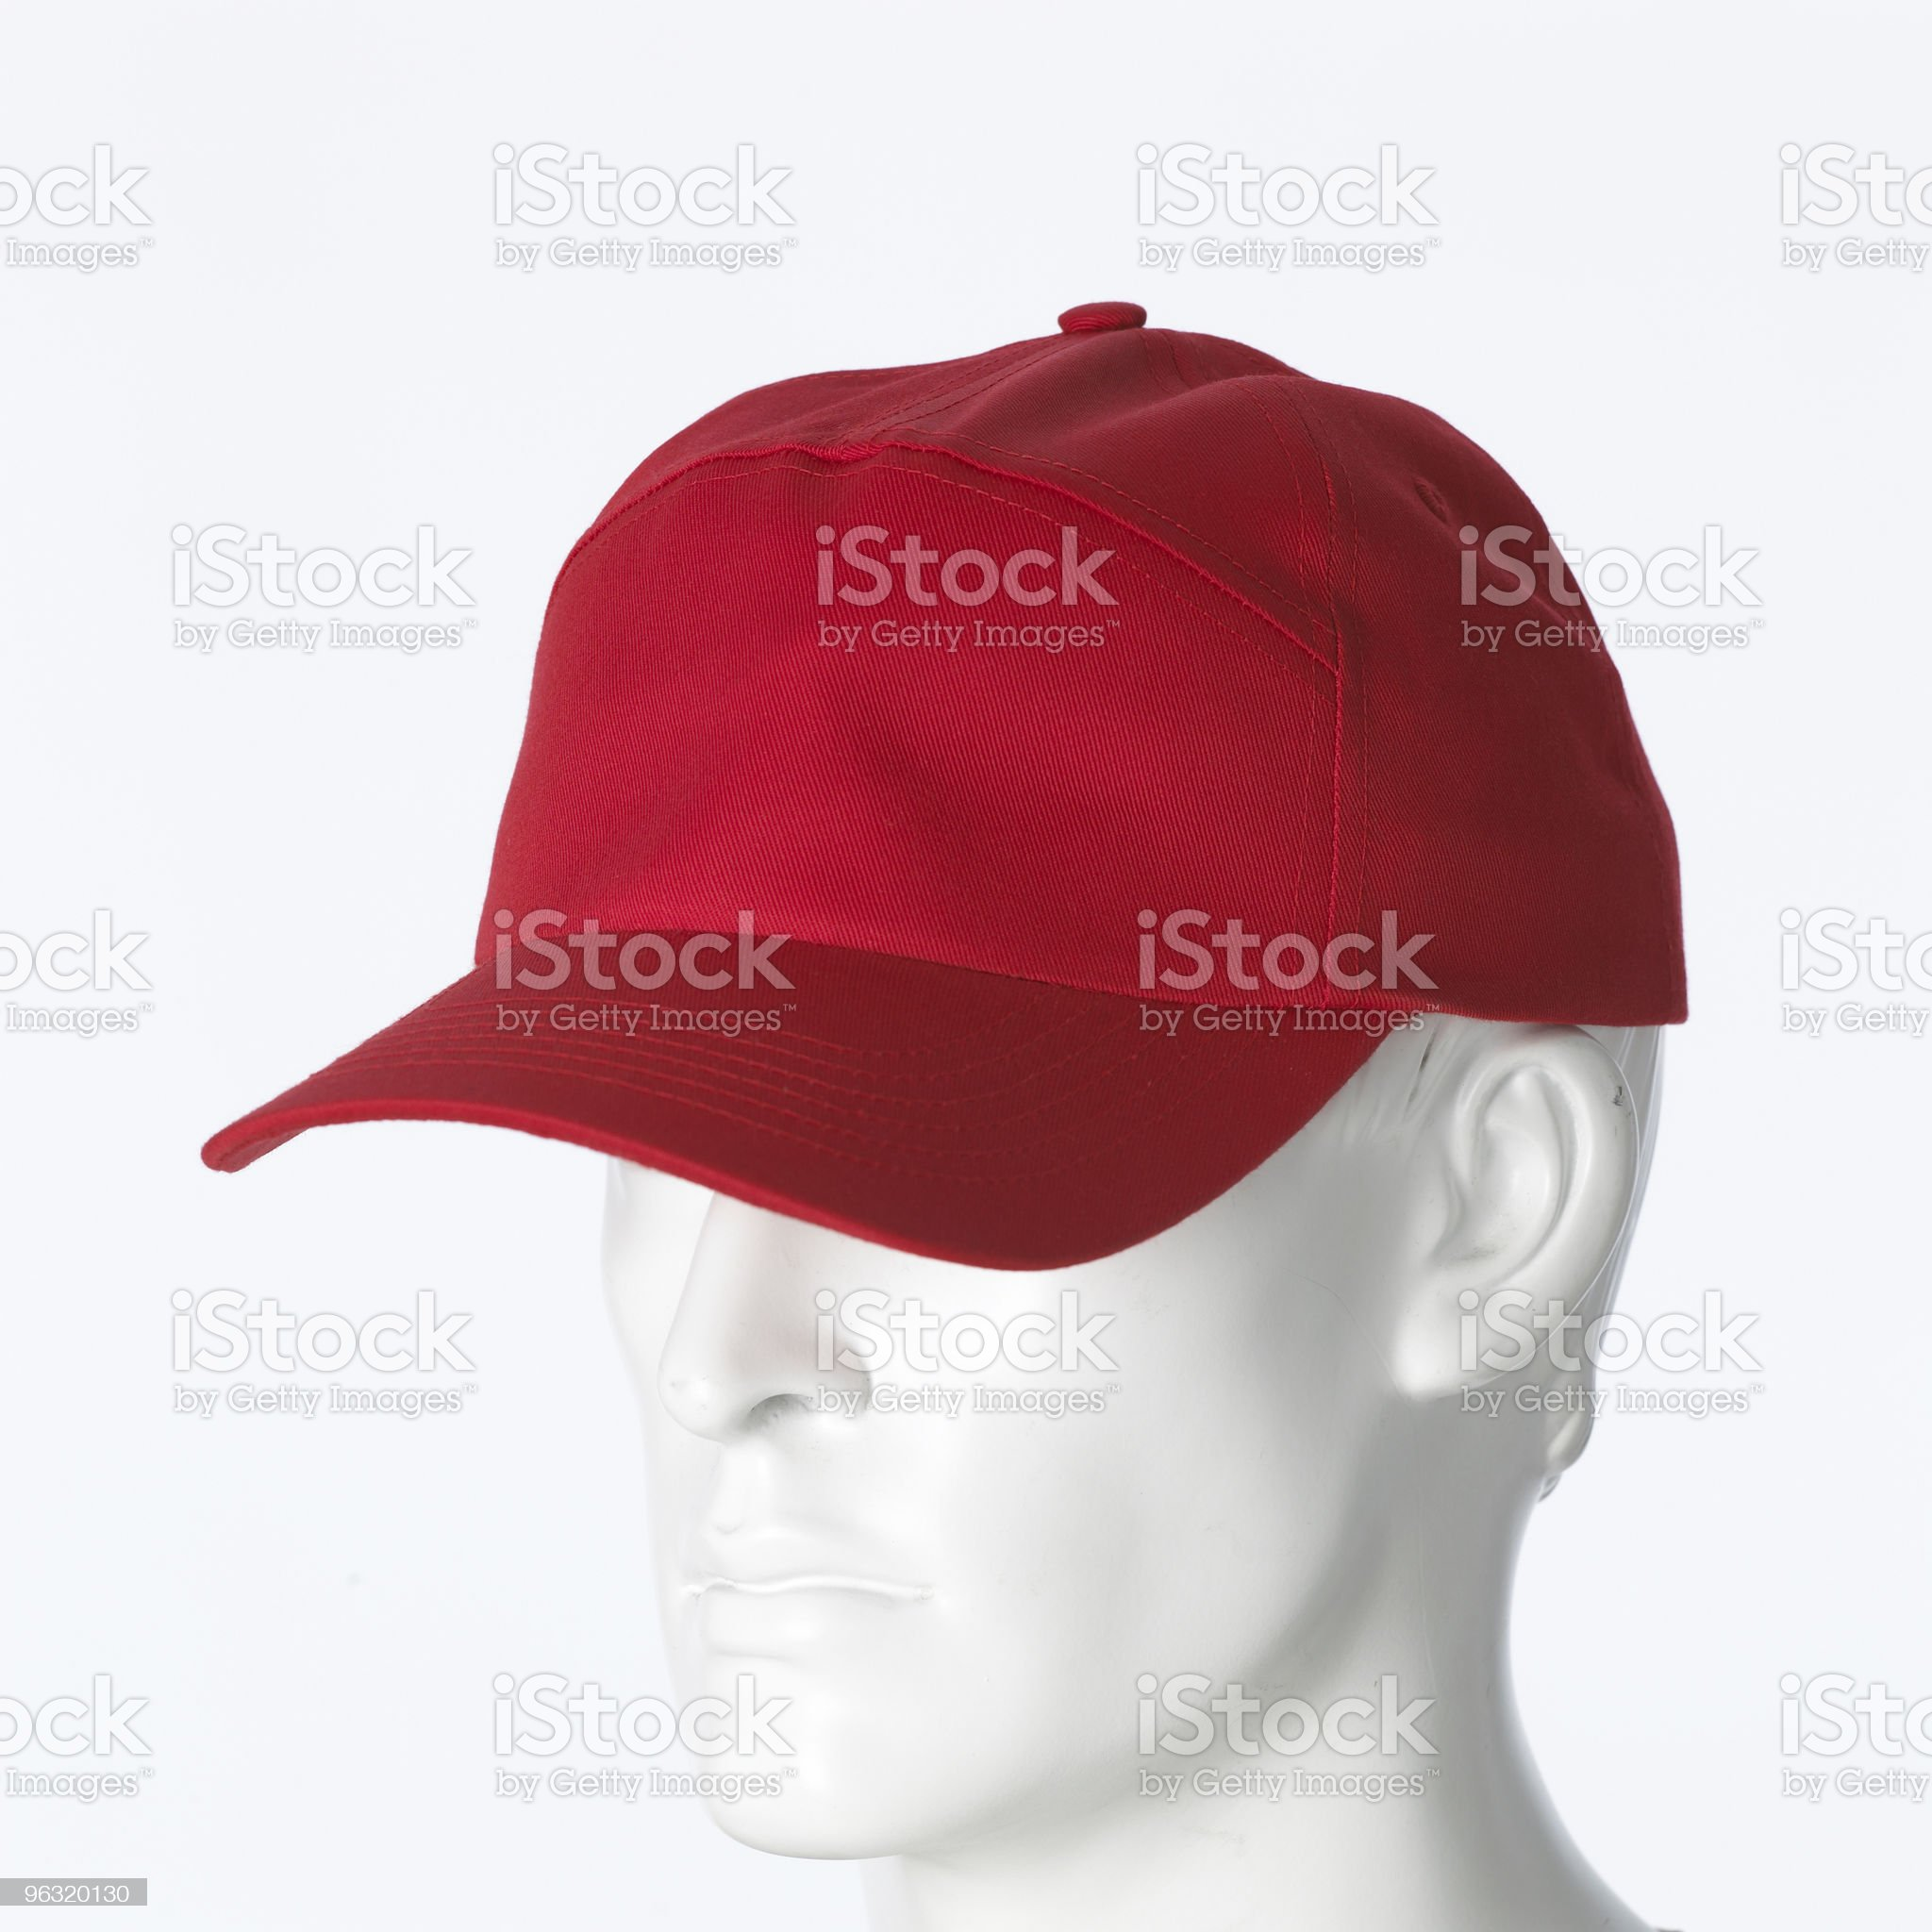 red cap royalty-free stock photo